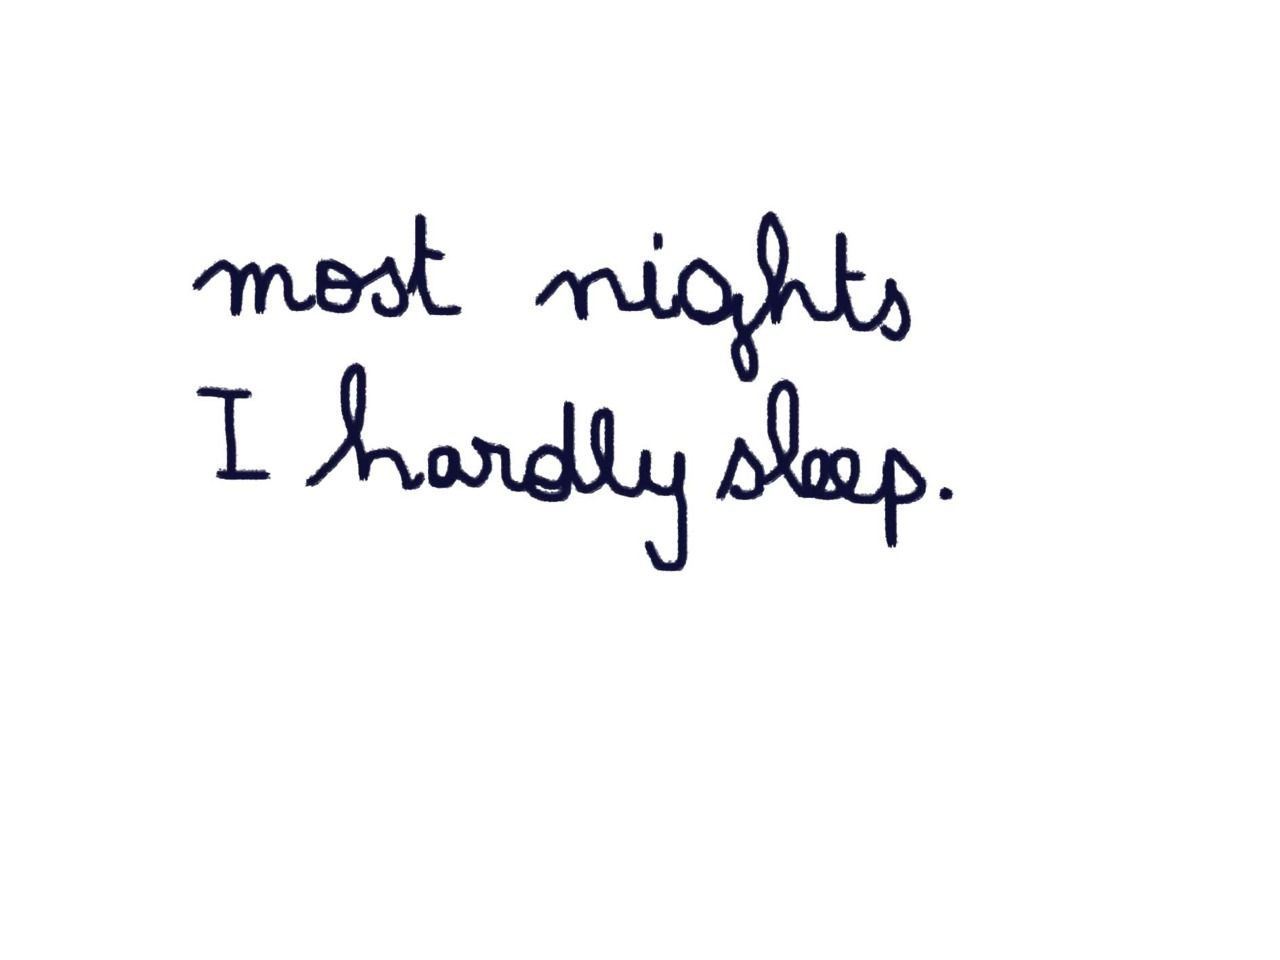 Quotes About Insomnia Insomnia  Go To Bed  Pinterest  Insomnia